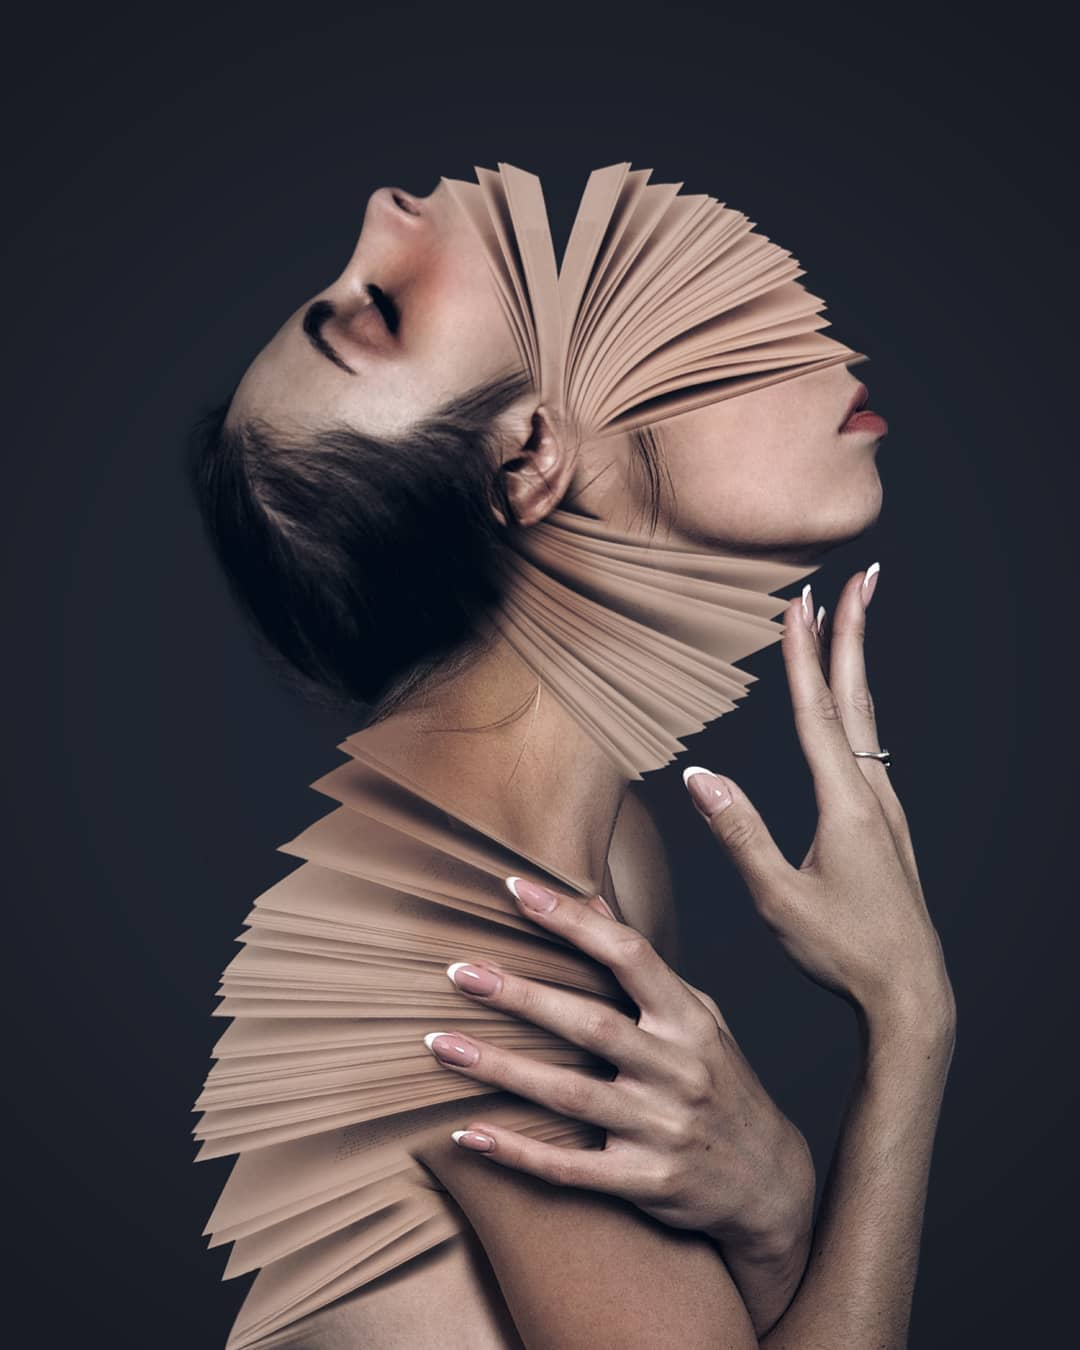 photo manipulation book flipping face by stina walfridsson